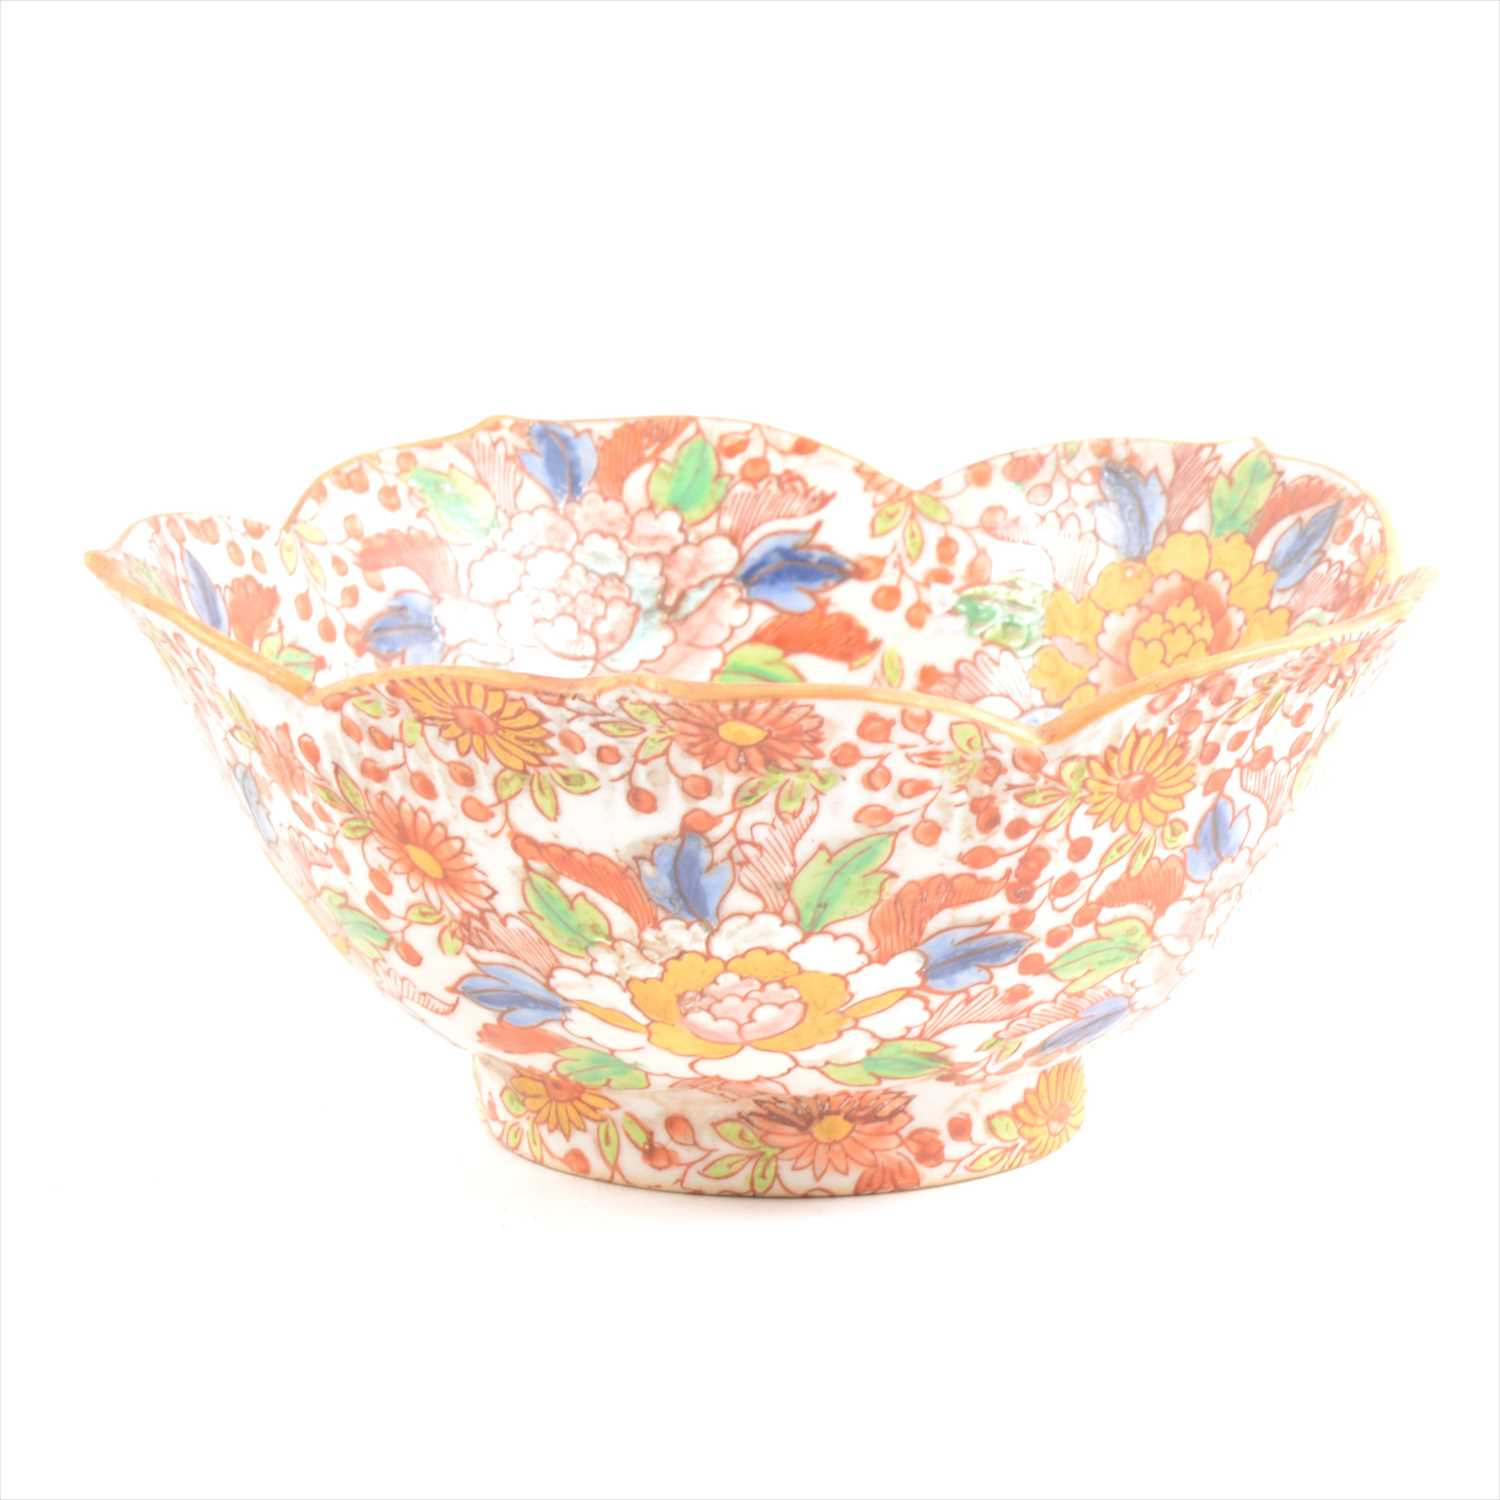 Lot 11-Antique Chinese polychrome floral bowl, six character mark to base.